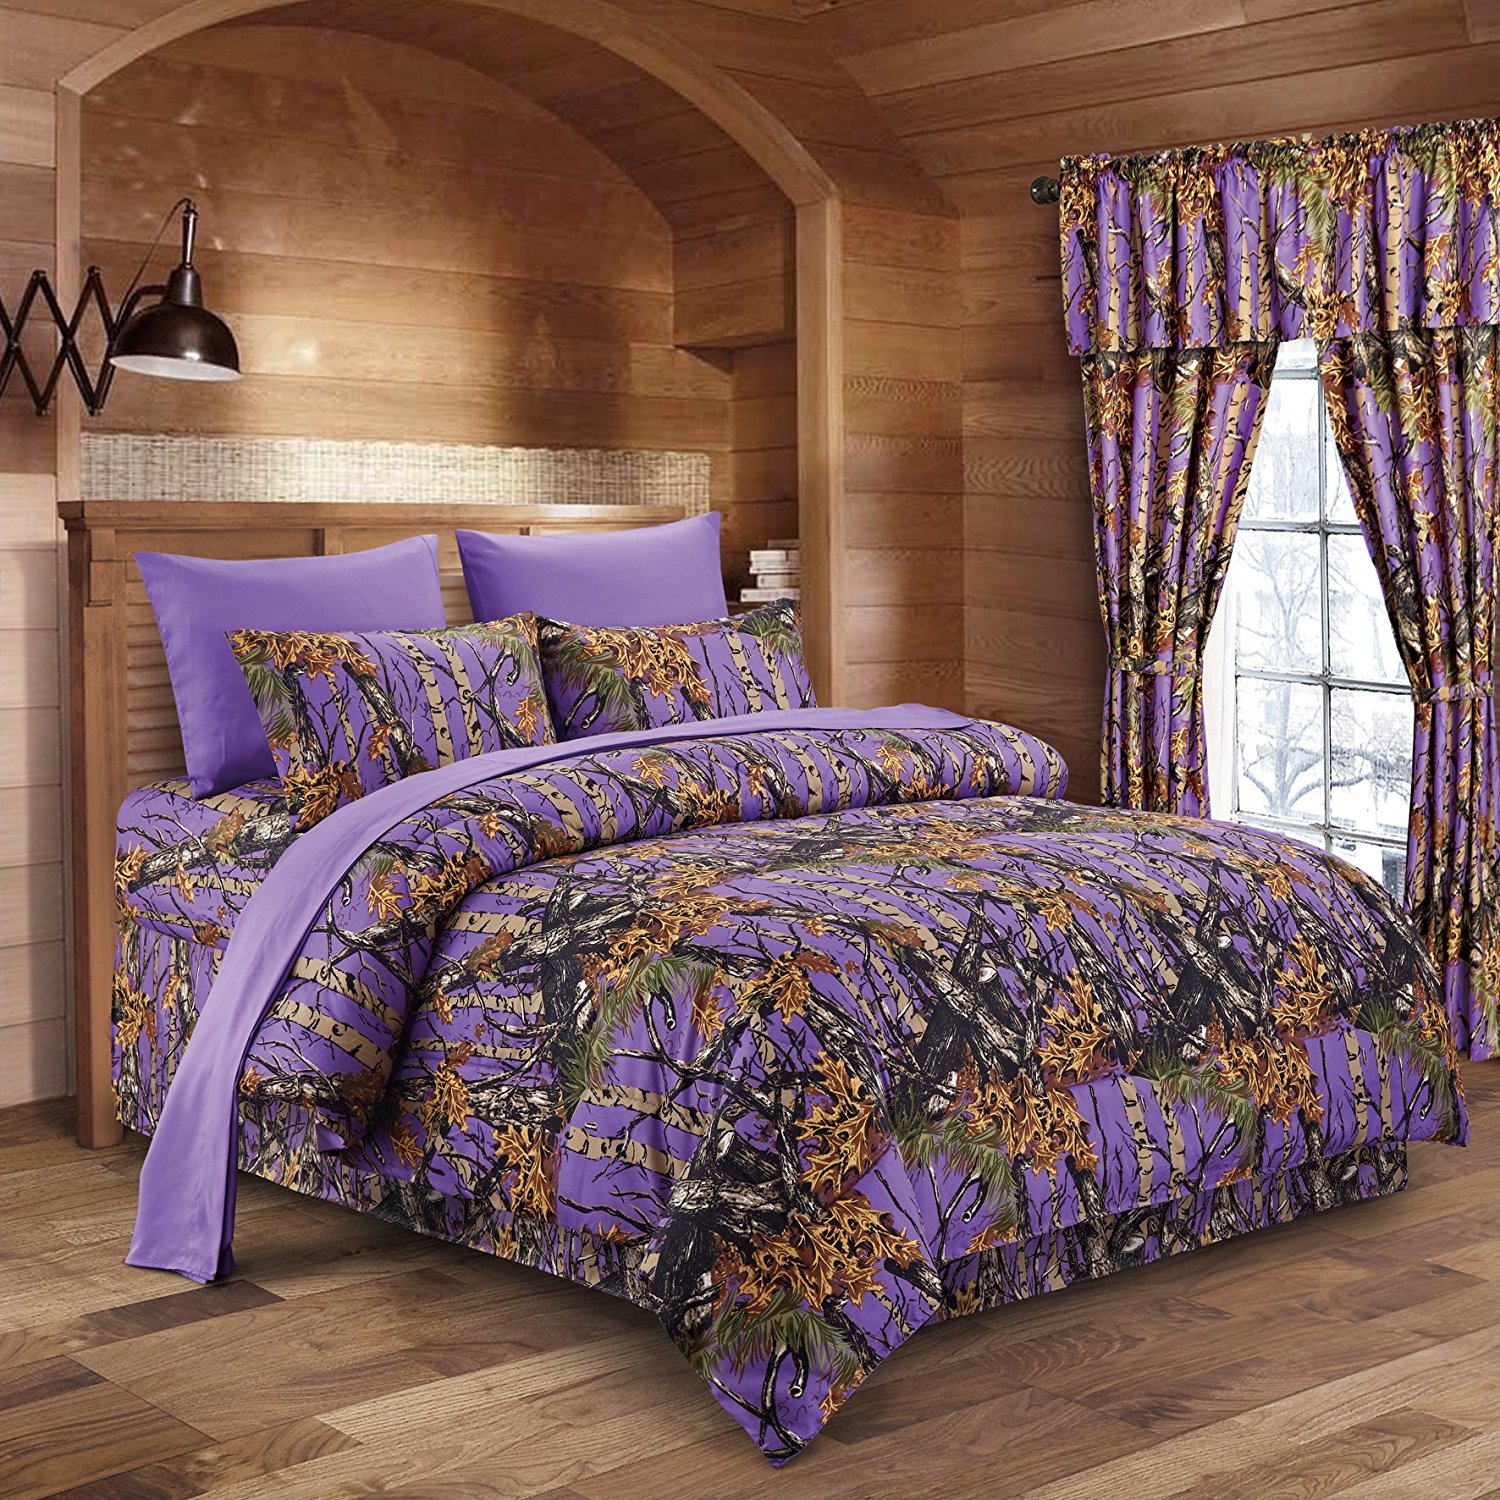 Regal Comfort 5pc Twin Size Woods Purple Camouflage Premium Comforter, Sheet, Pillowcases, and Bed Skirt Set Camo Bedding Set For Hunters Cabin or Rustic Lodge Teens Boys and Girls